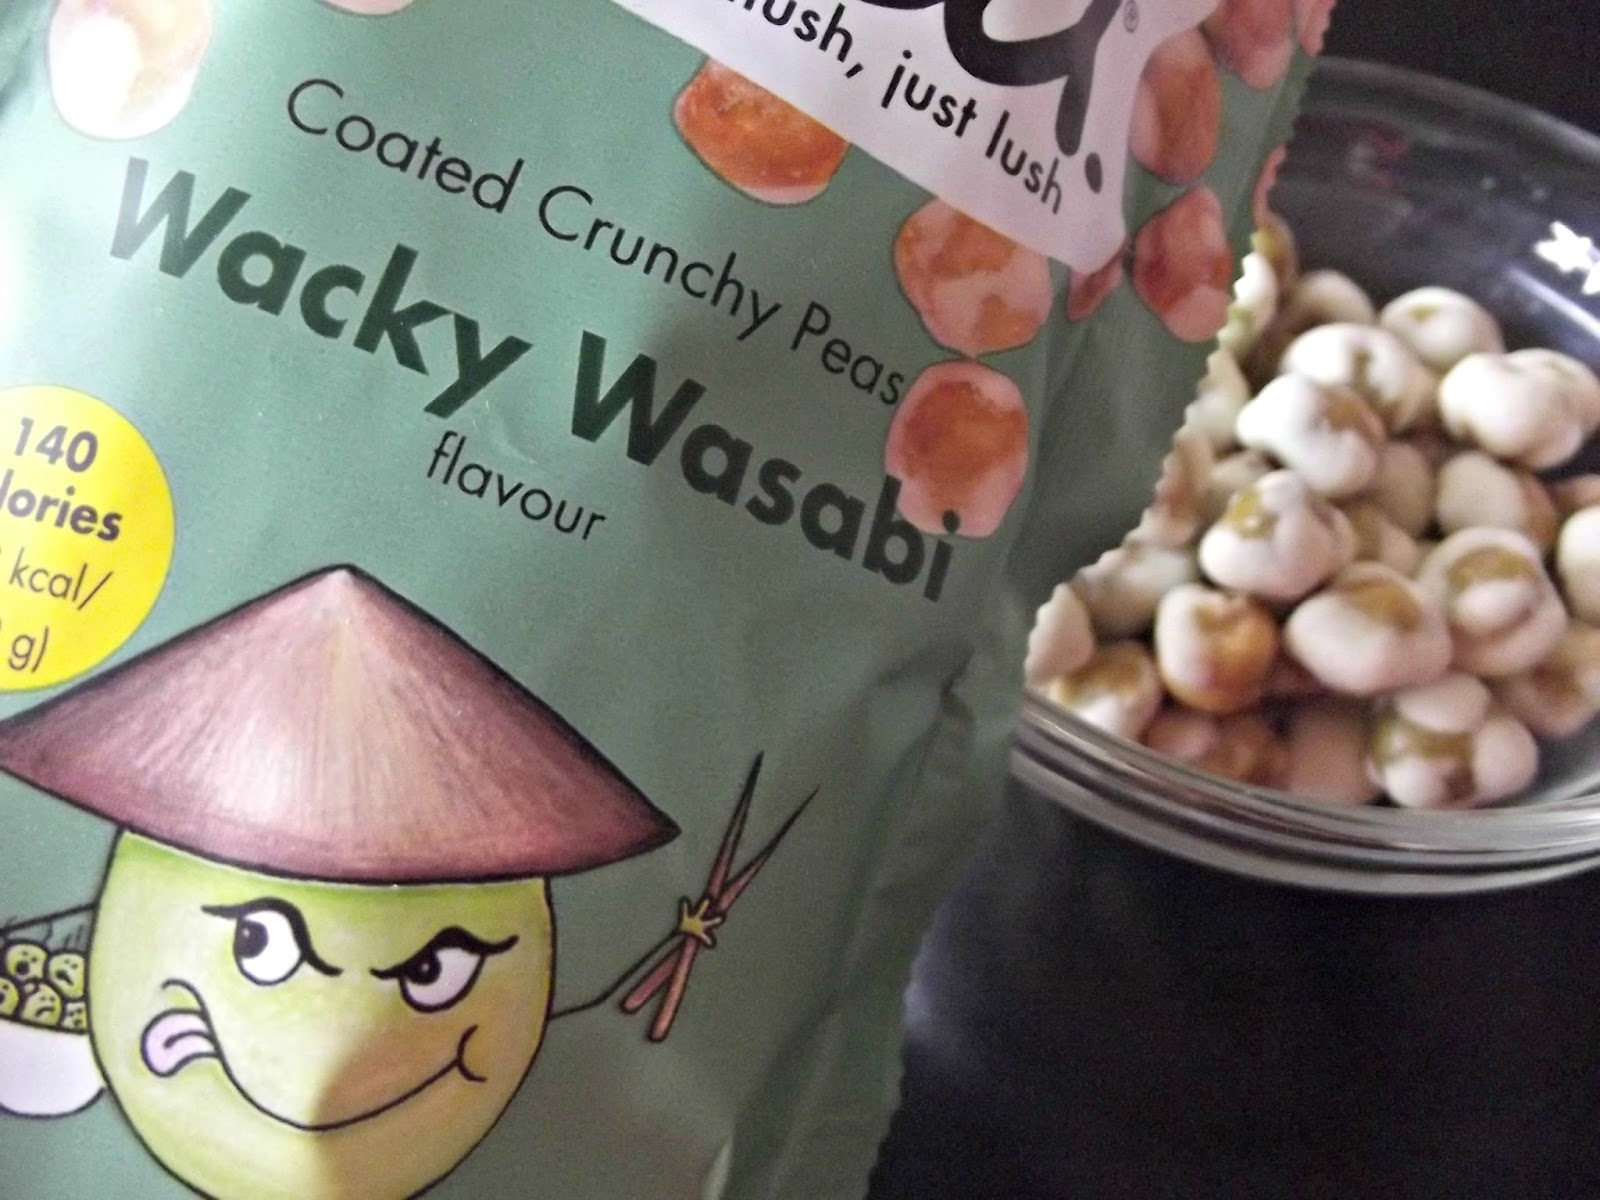 Taking the Pea coated crunchy pea snacks wacky wasabi